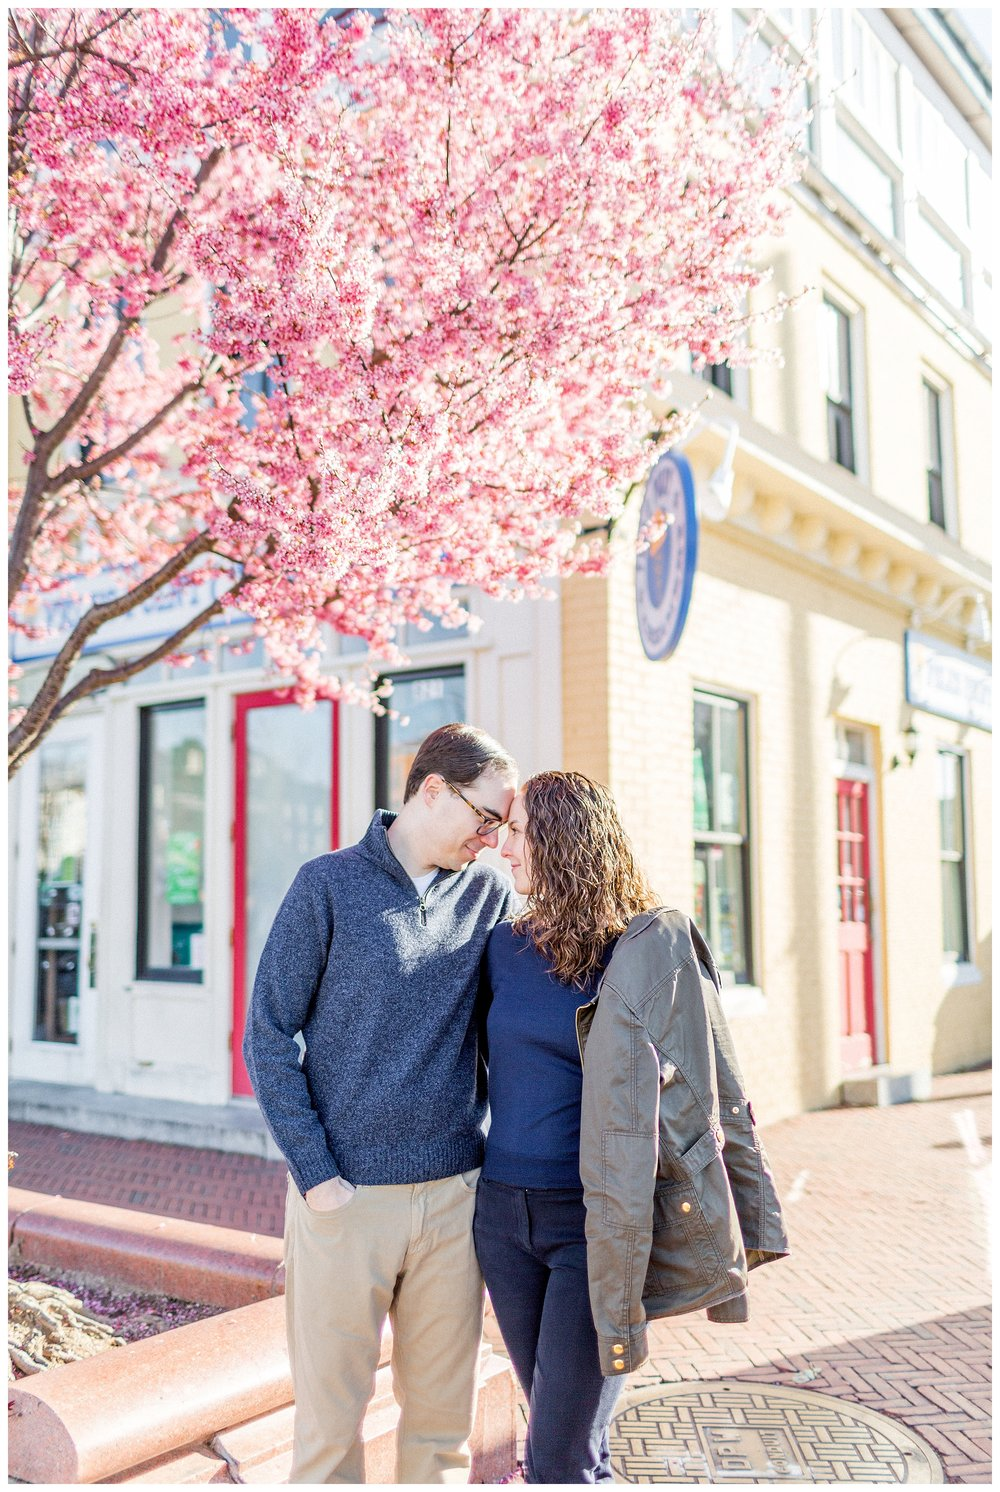 Baltimore Engagement Pictures | Maryland Wedding Photographer Kir Tuben_0038.jpg